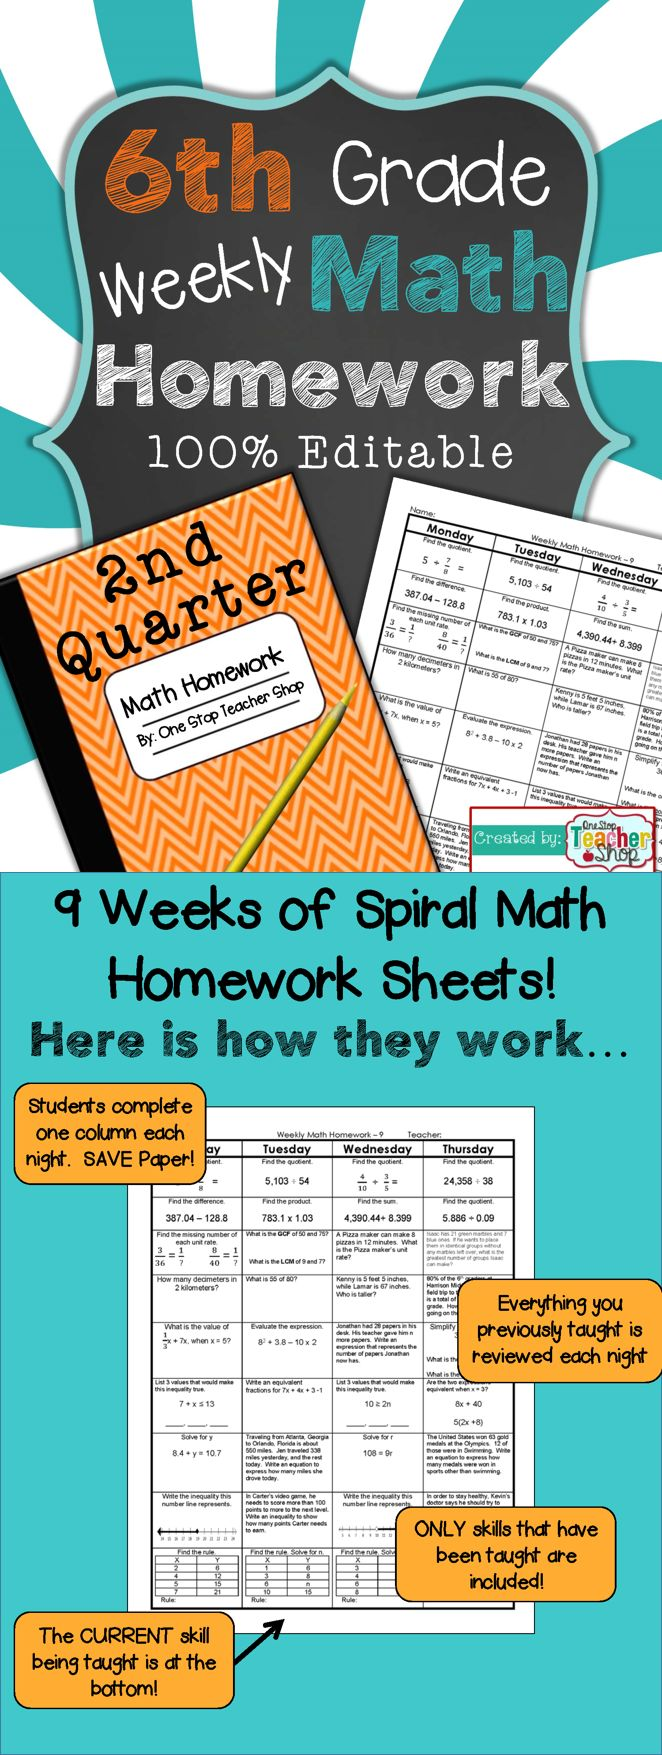 50 best Math projects images on Pinterest | School, Math activities ...